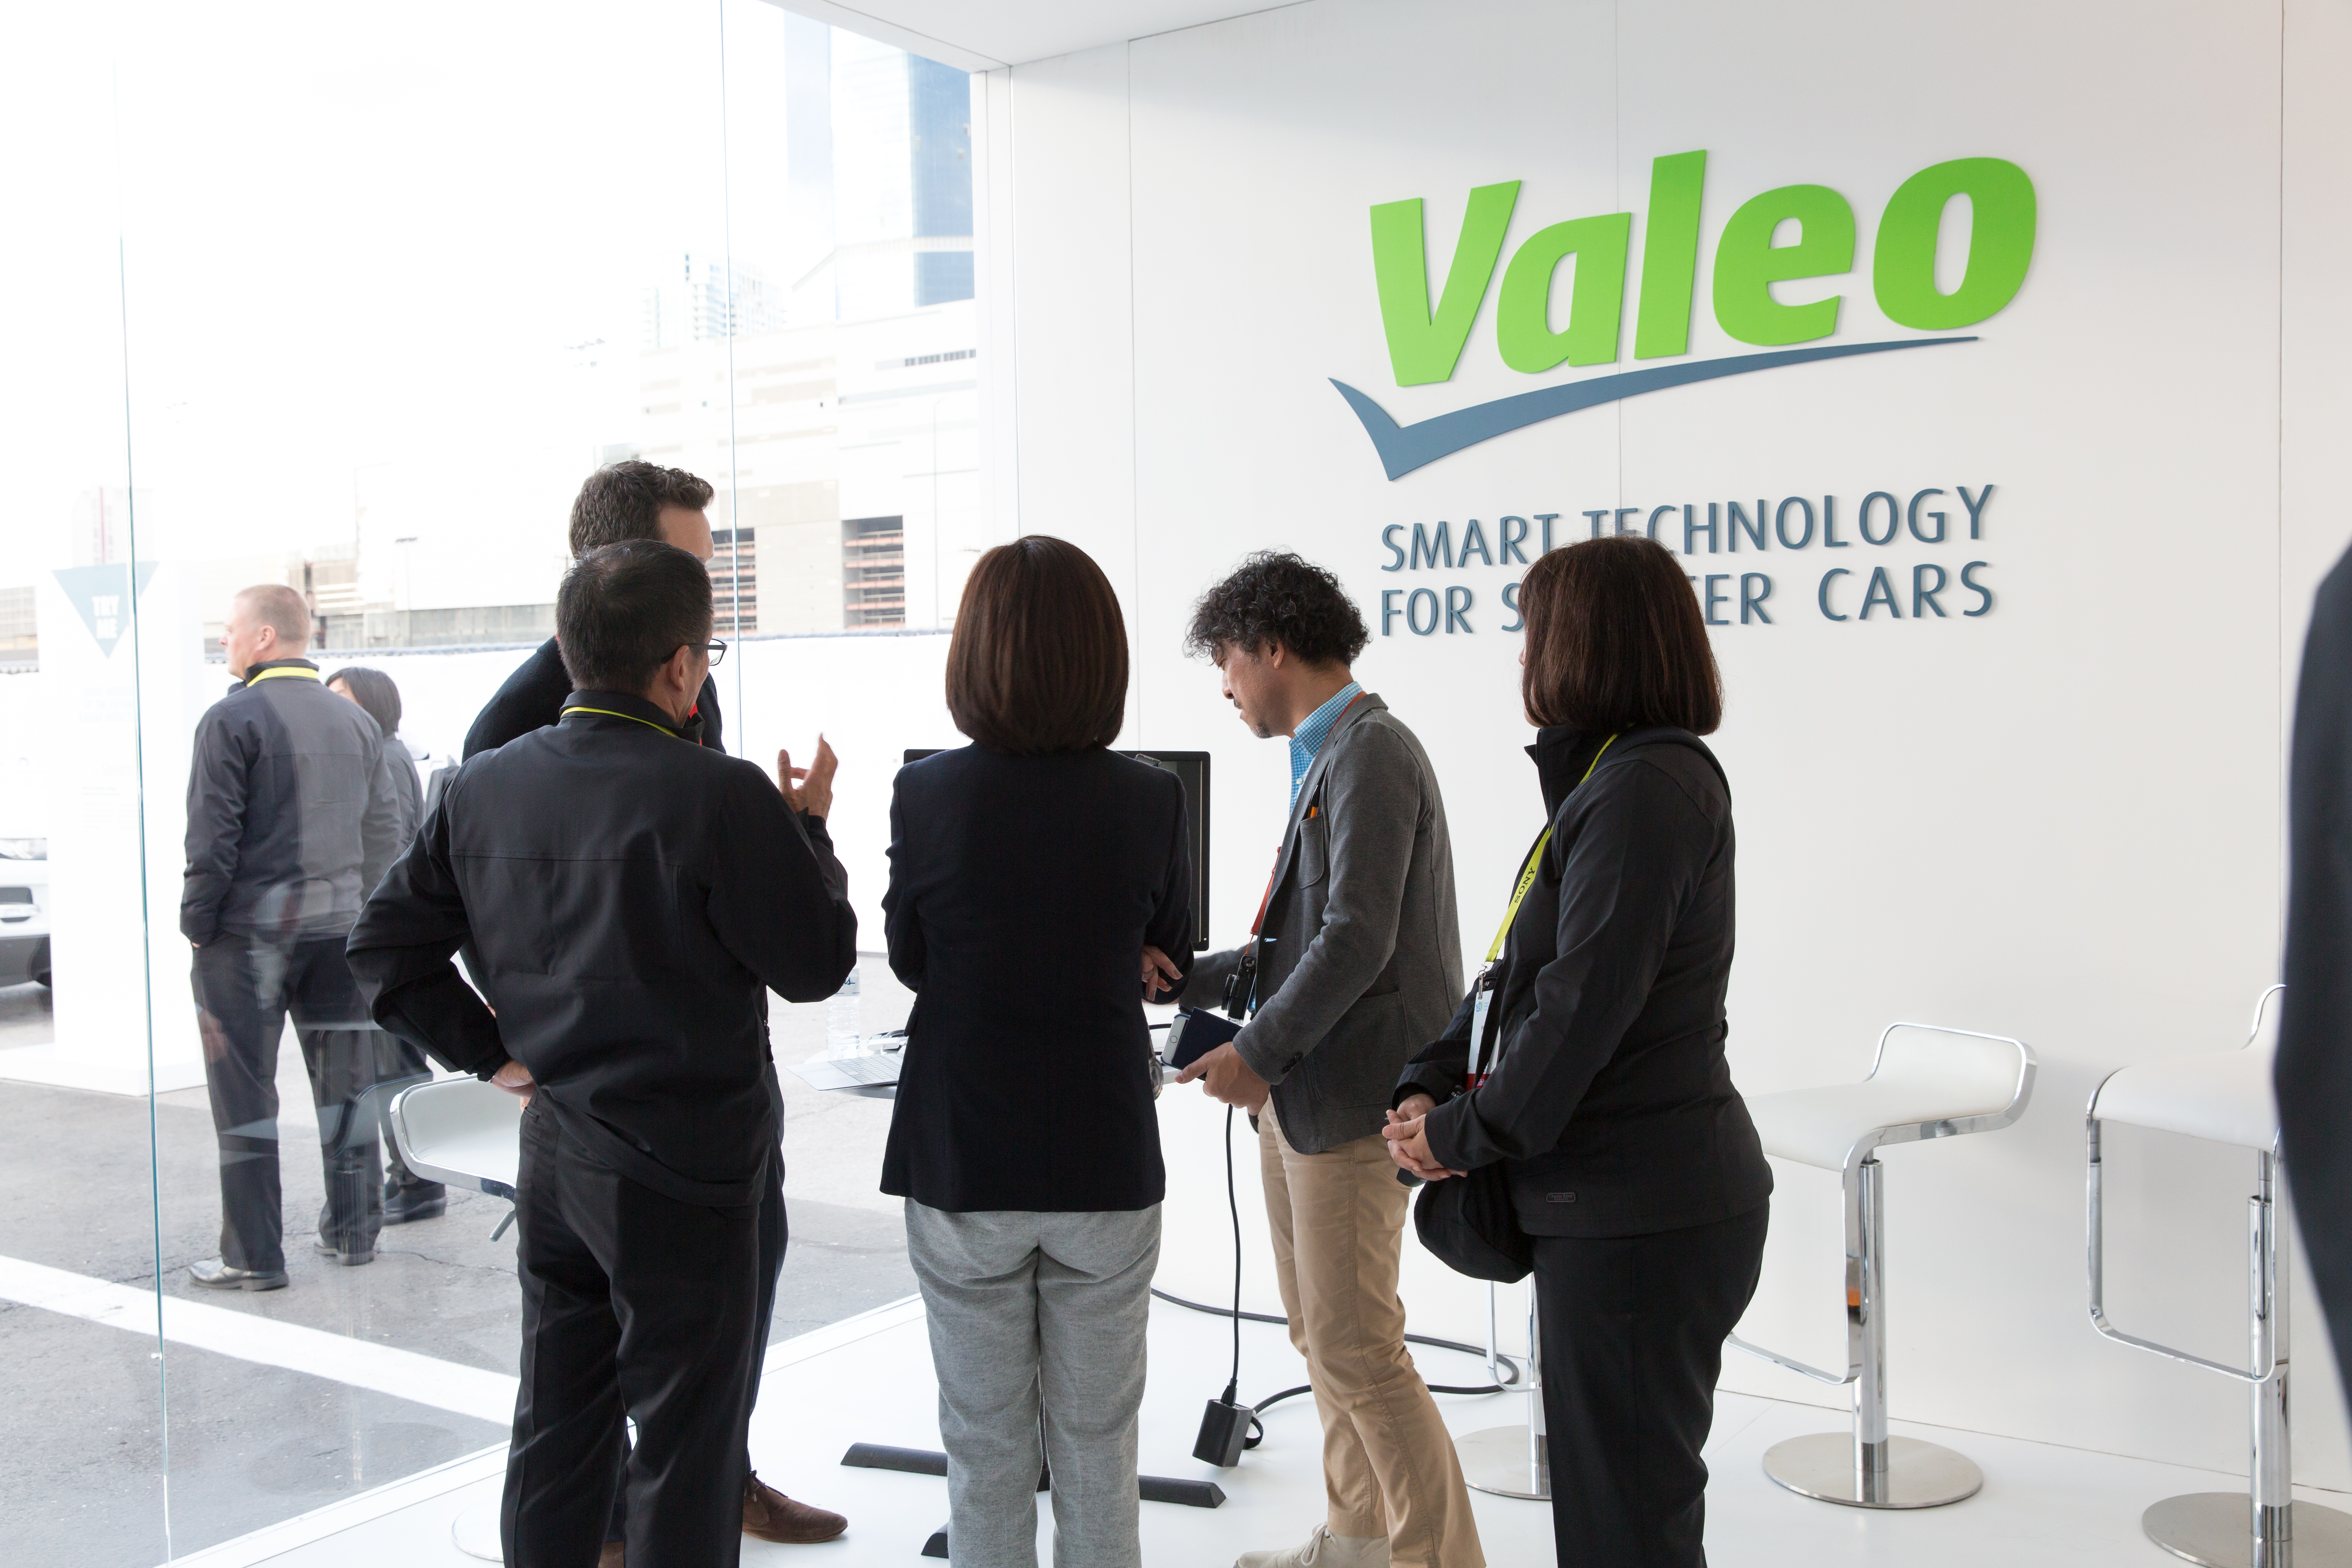 Valeo stand at CES 2017